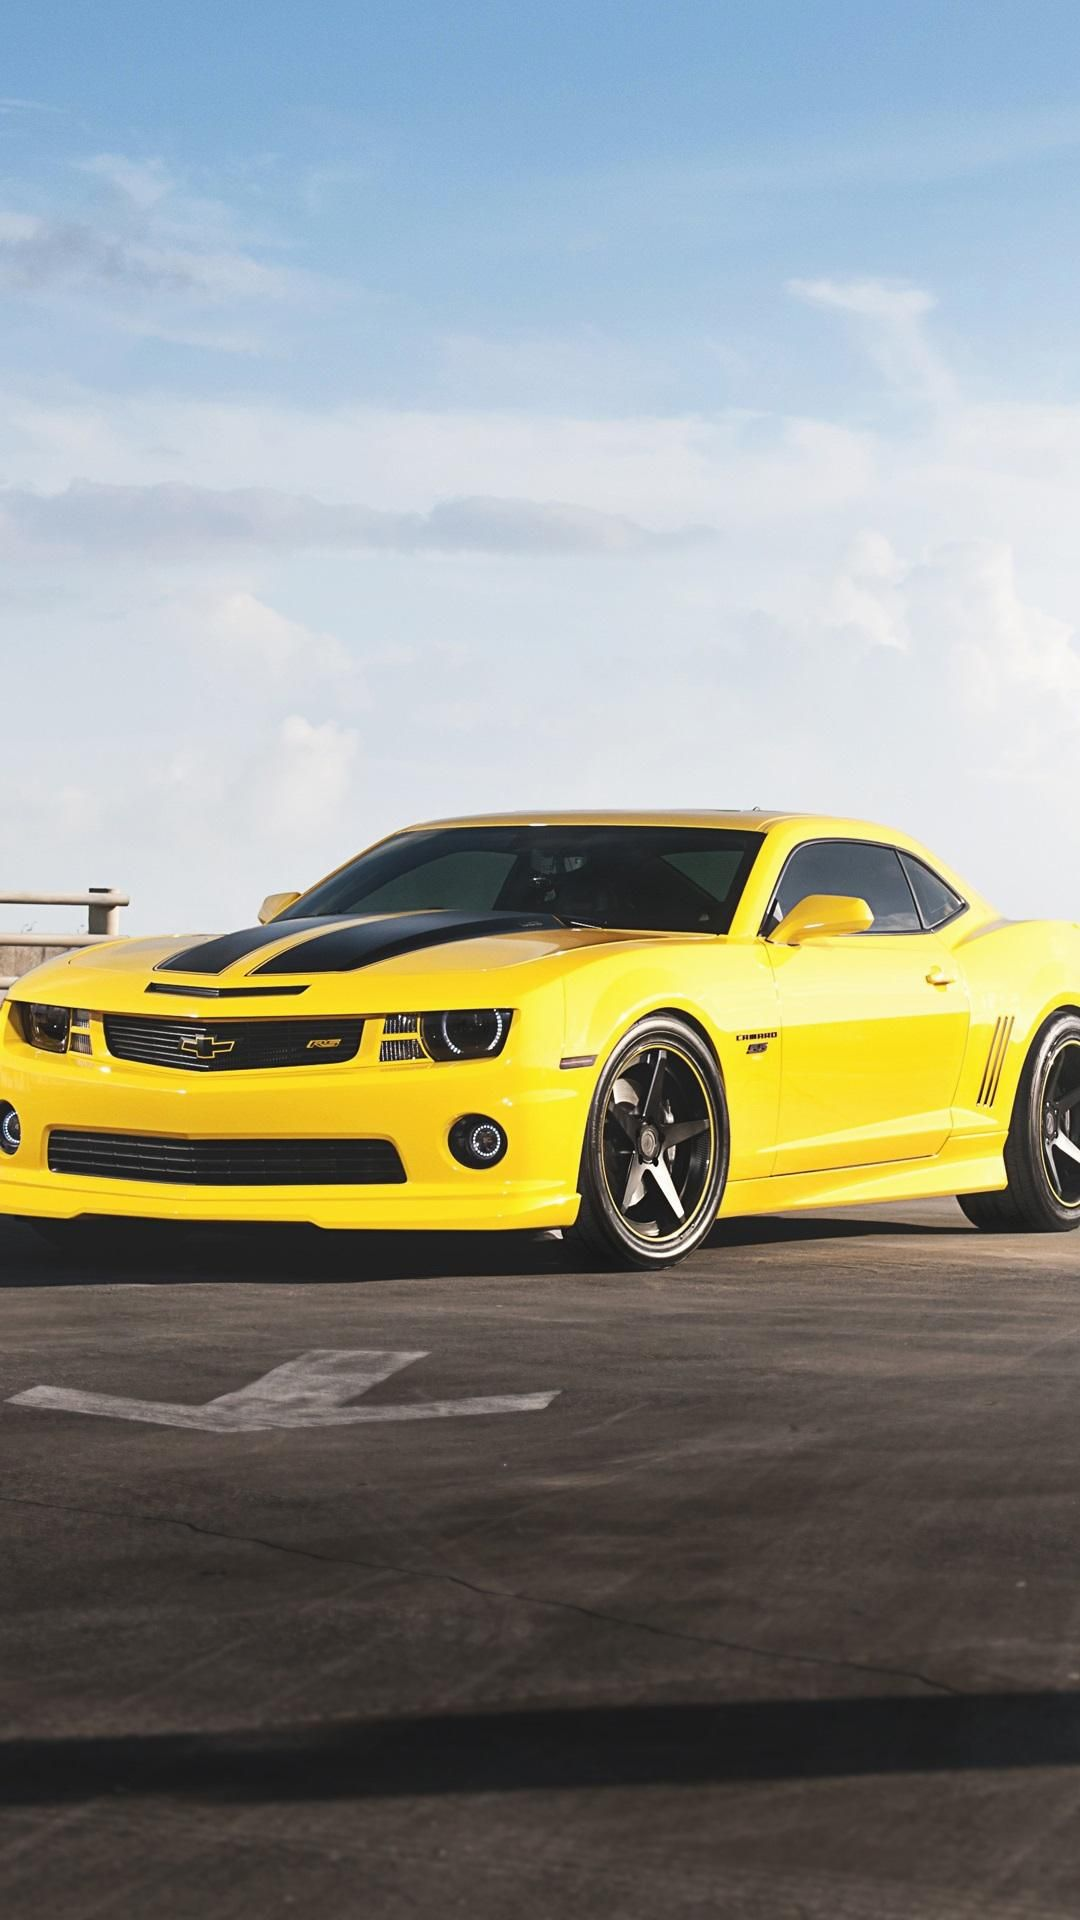 Live wallpaper is an exciting and novel way of spicing up your smartphone's home and lock screens. Yellow Car Android Wallpaper Hd Wallpapers Free Chevrolet Camaro Car Wallpapers Camaro Rs